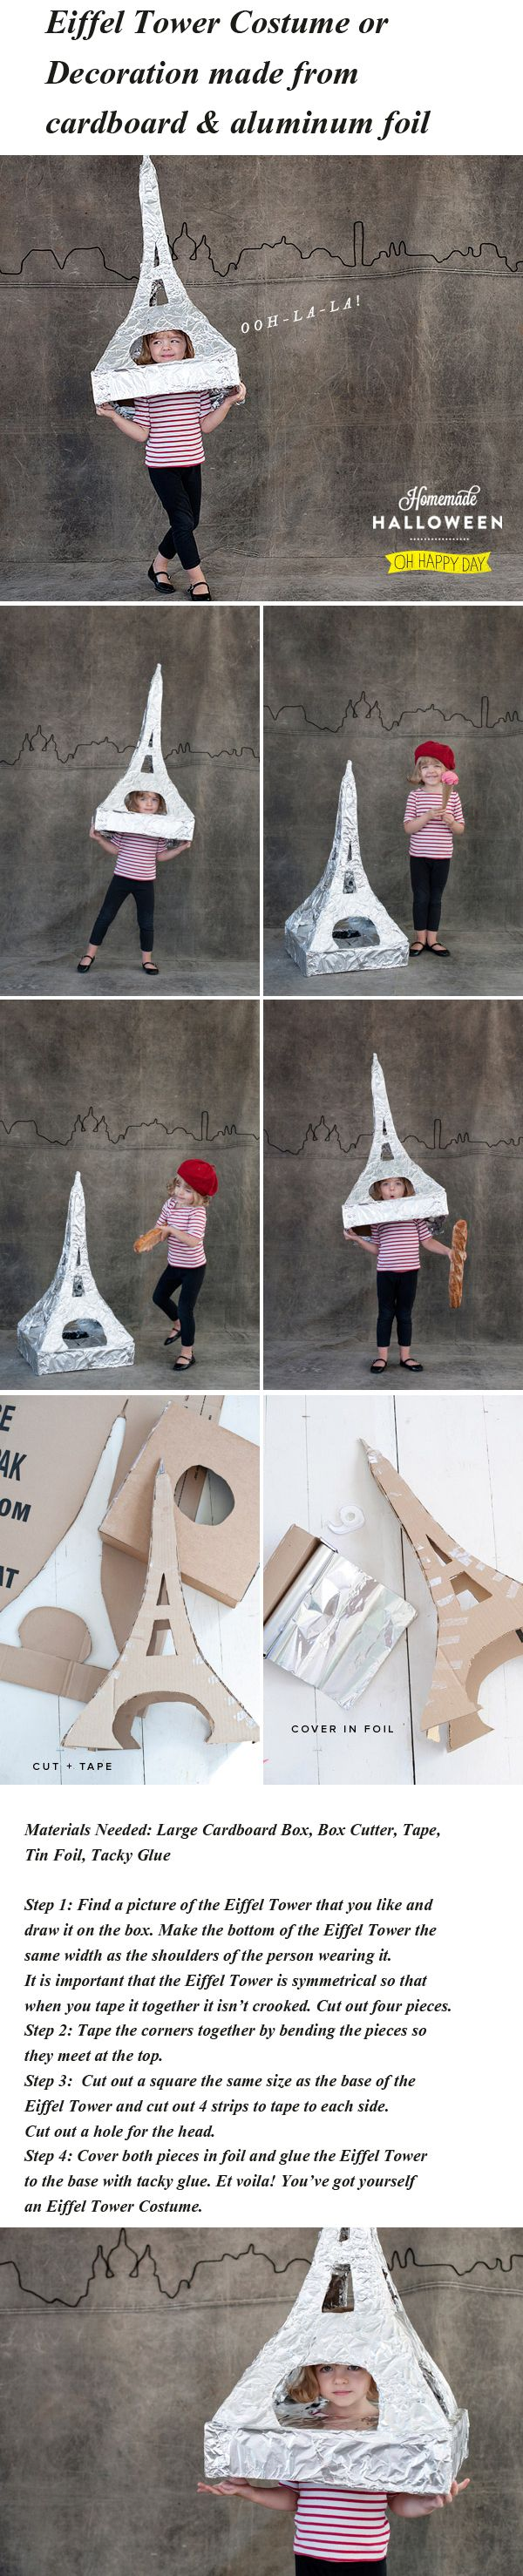 DIY: Eiffel Tower Costume  This Eiffel Tower Costume is really simple and you probably have everything you need to make it at home right now. You could even add battery operated lights to make it sparkle if you wanted to get fancy.